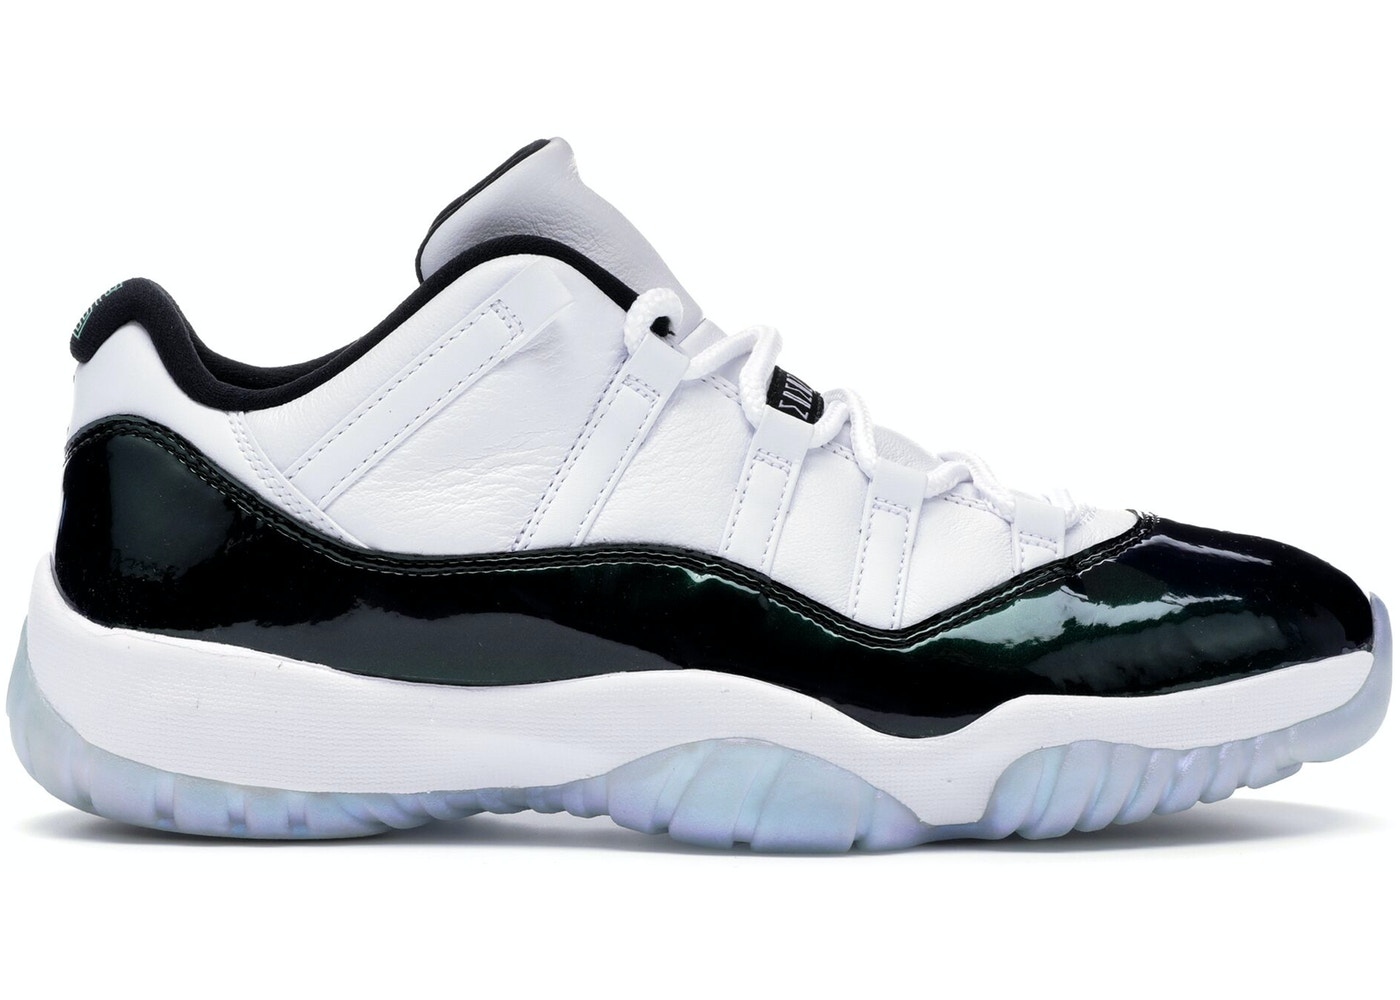 58142126191 Jordan 11 Retro Low Iridescent - 528895-145